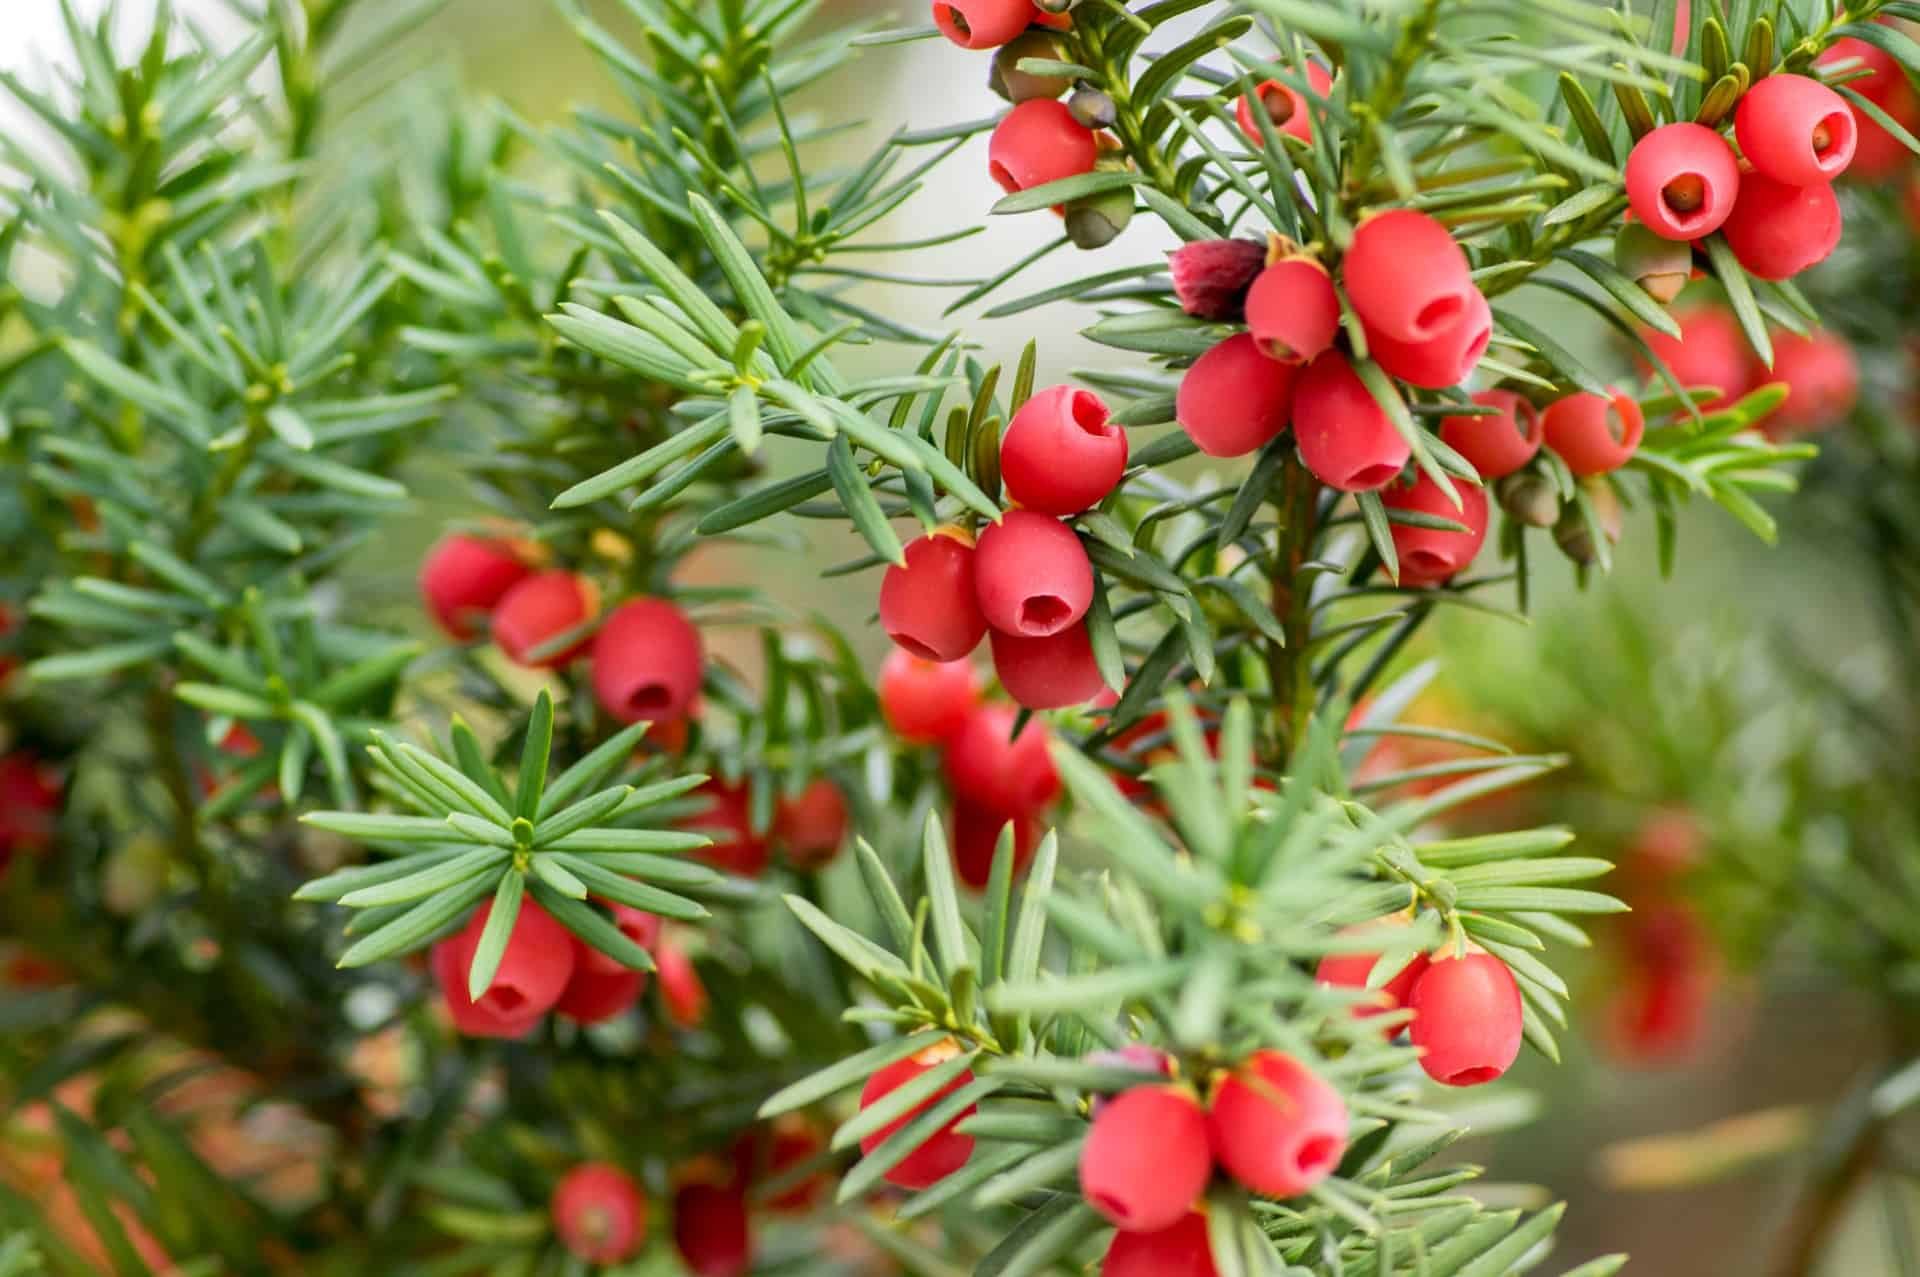 yew is a extremely long-lived tree